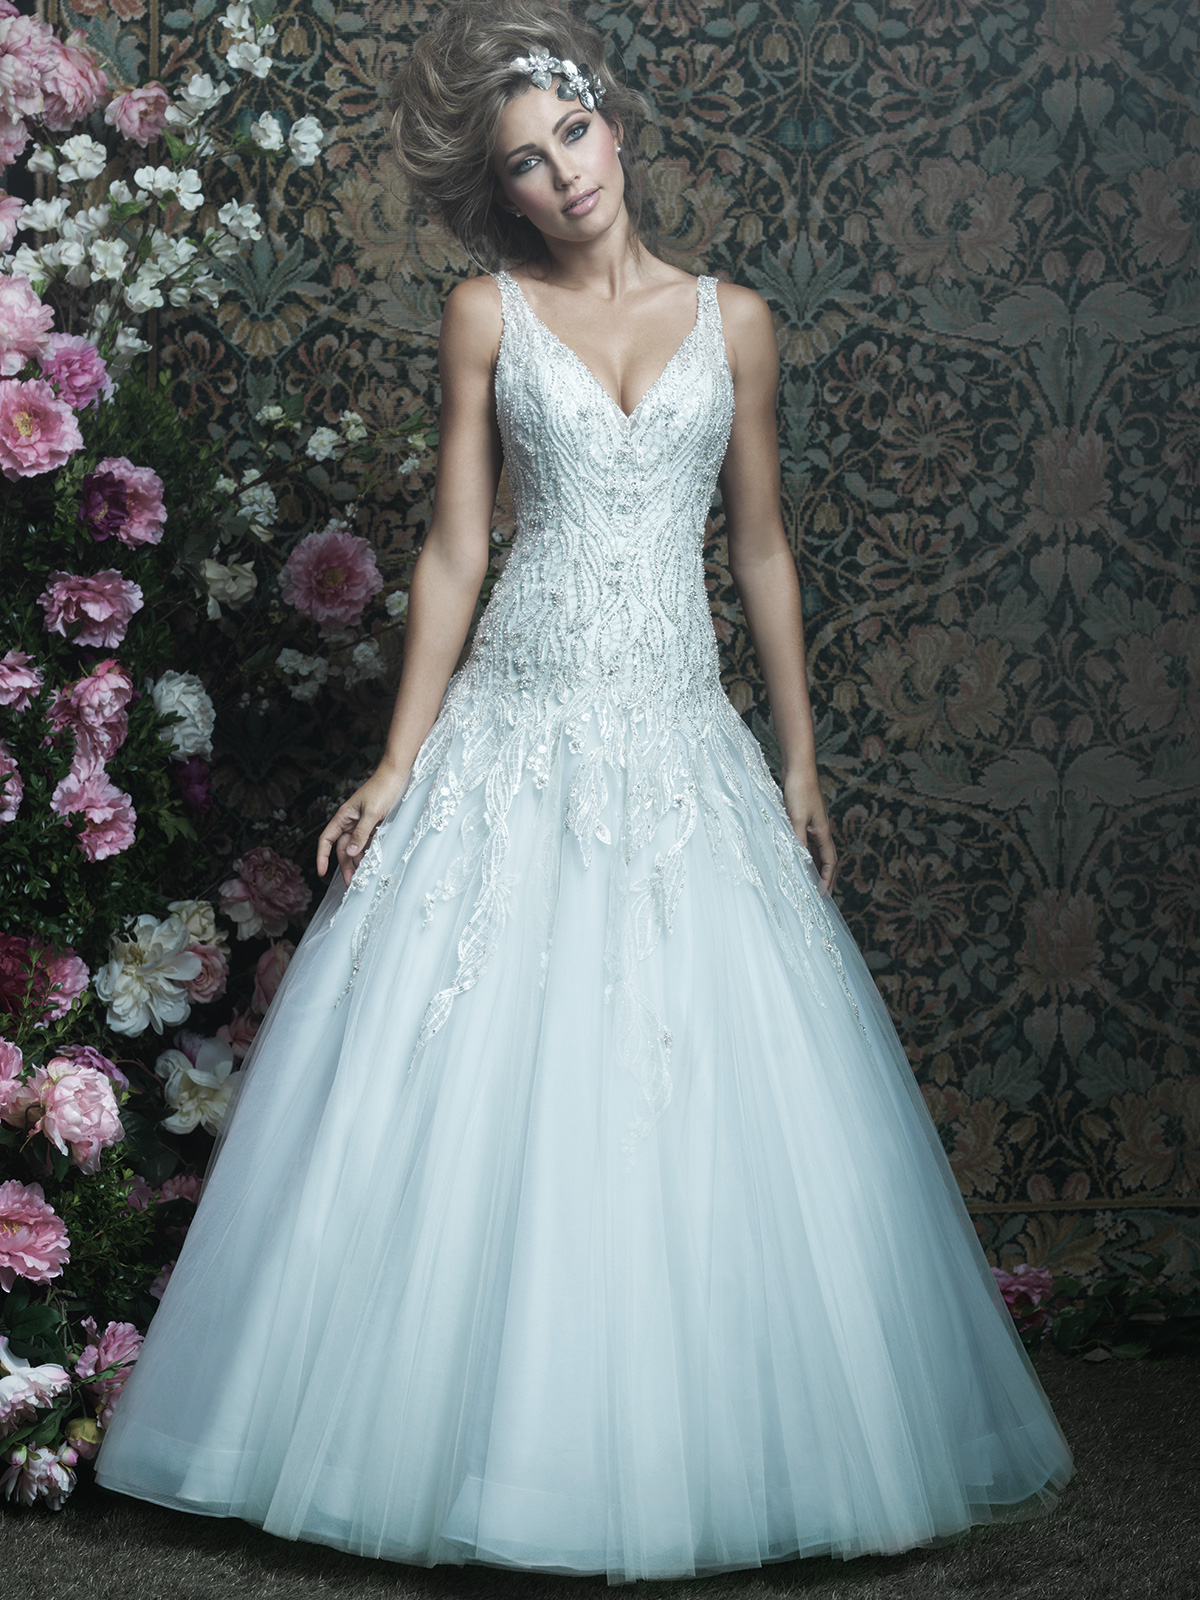 Allure Bridals Couture C414 Tulle Ball Gown Wedding Dress ...